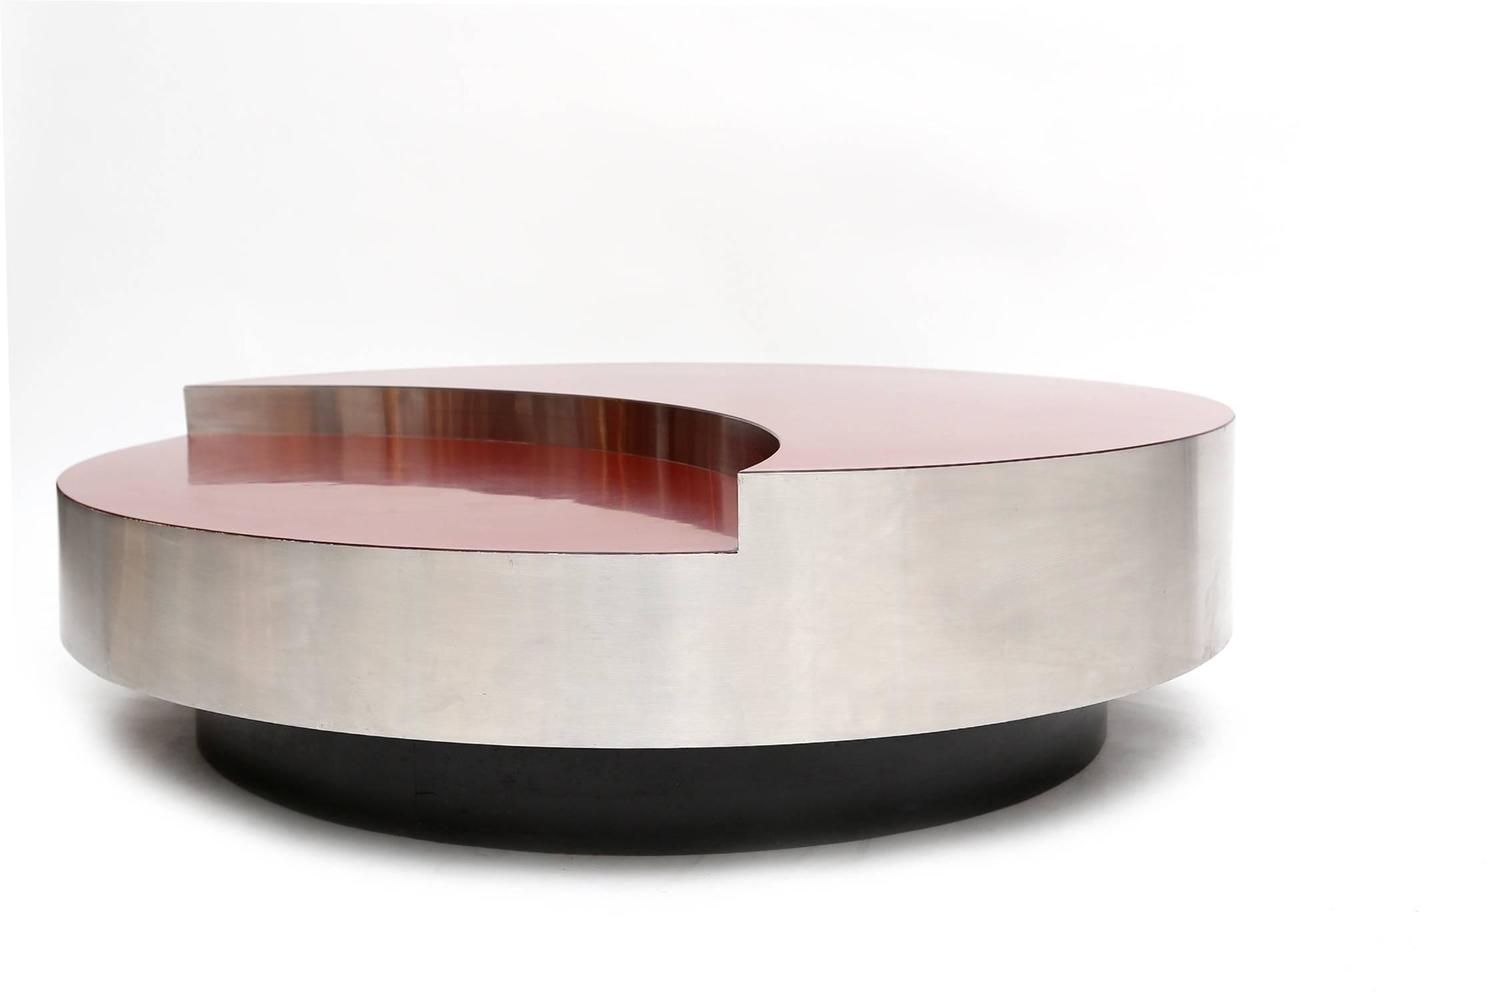 Willy rizzo revolving coffee table at 1stdibs for Table willy rizzo